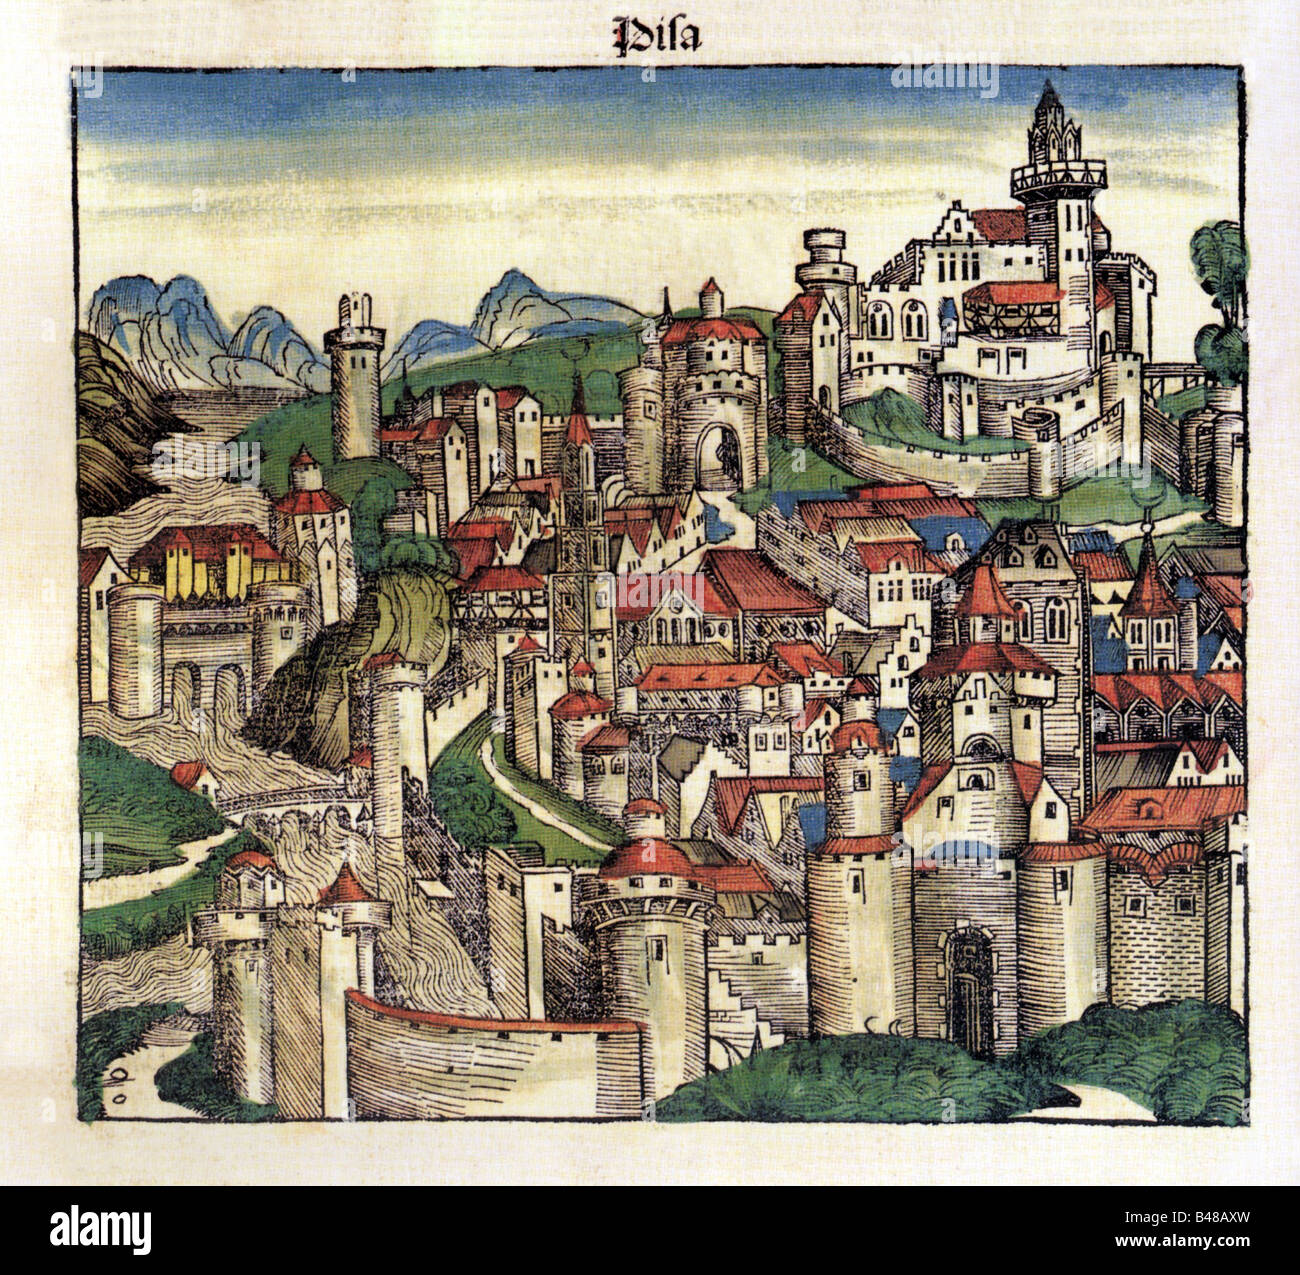 geography / travel, Italy, Pisa, city views / cityviews, woodcut by Michael Wohlgemut or Wilhelm Pleydenwurff, world - Stock Image